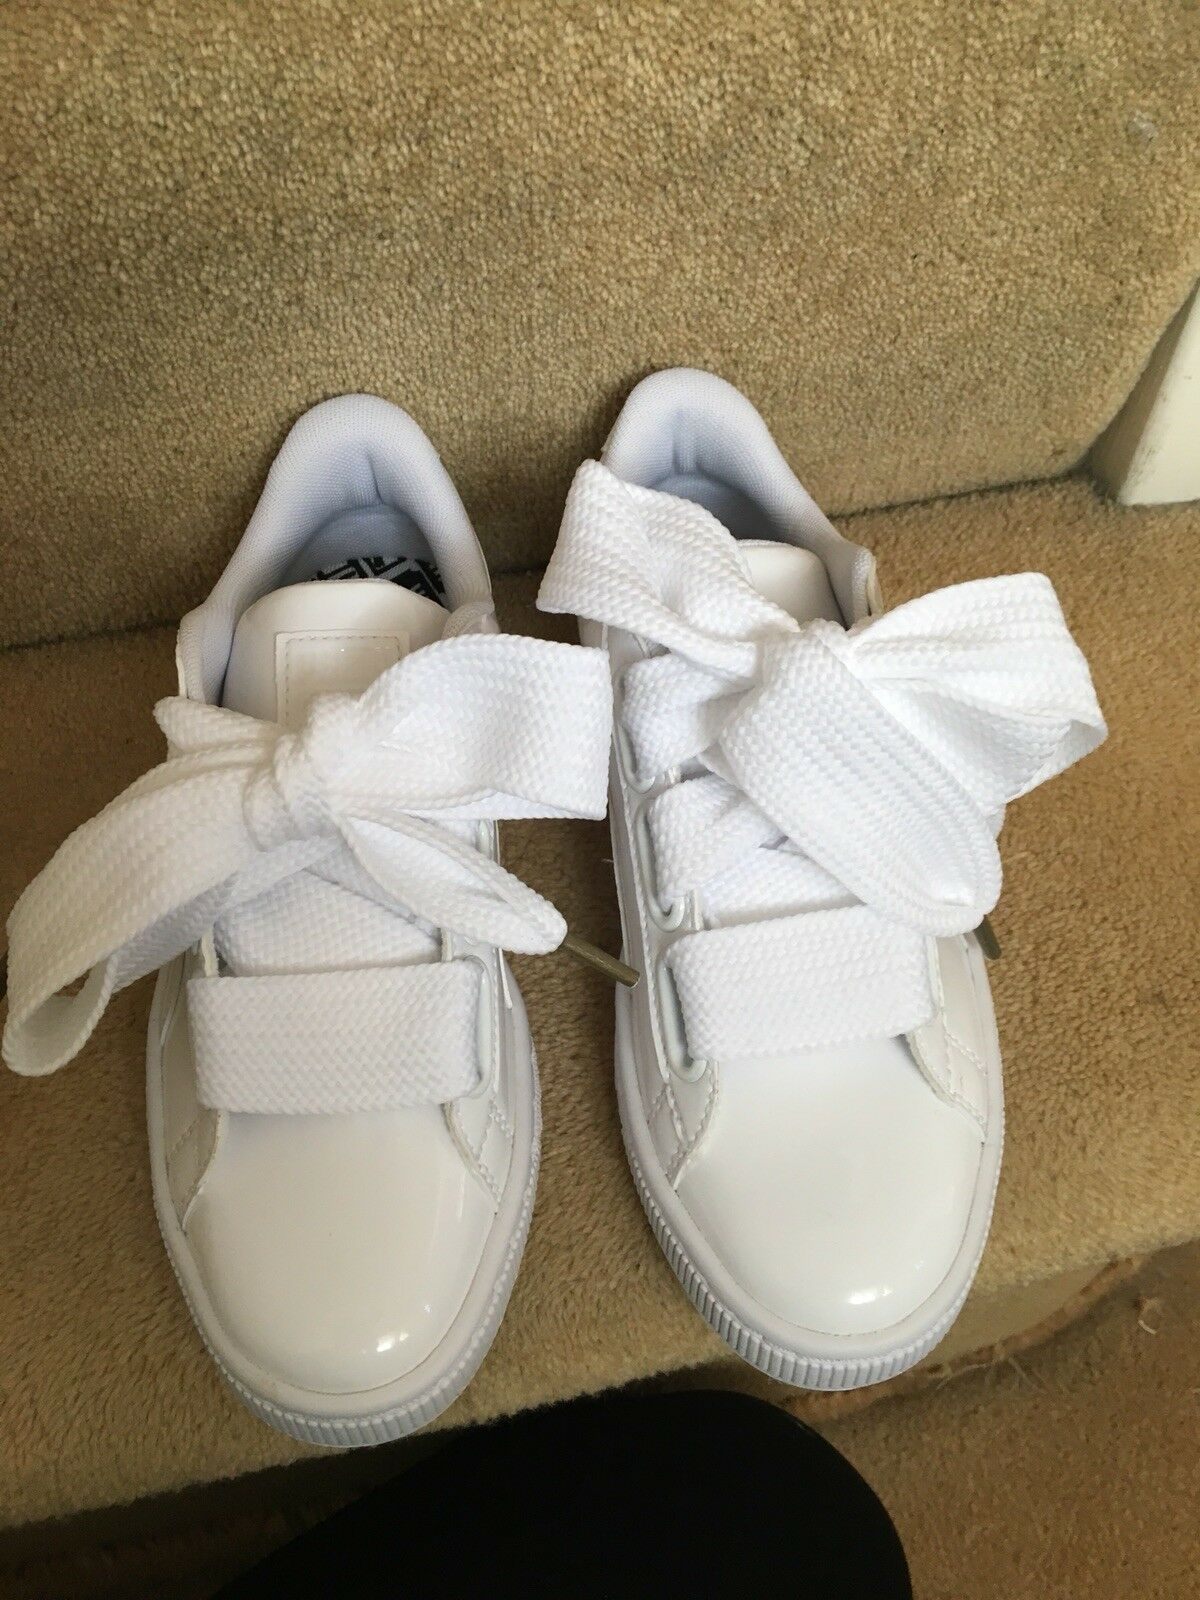 Cheapest On Ebay!!! Women's White Puma Basket Heart Patent Trainers